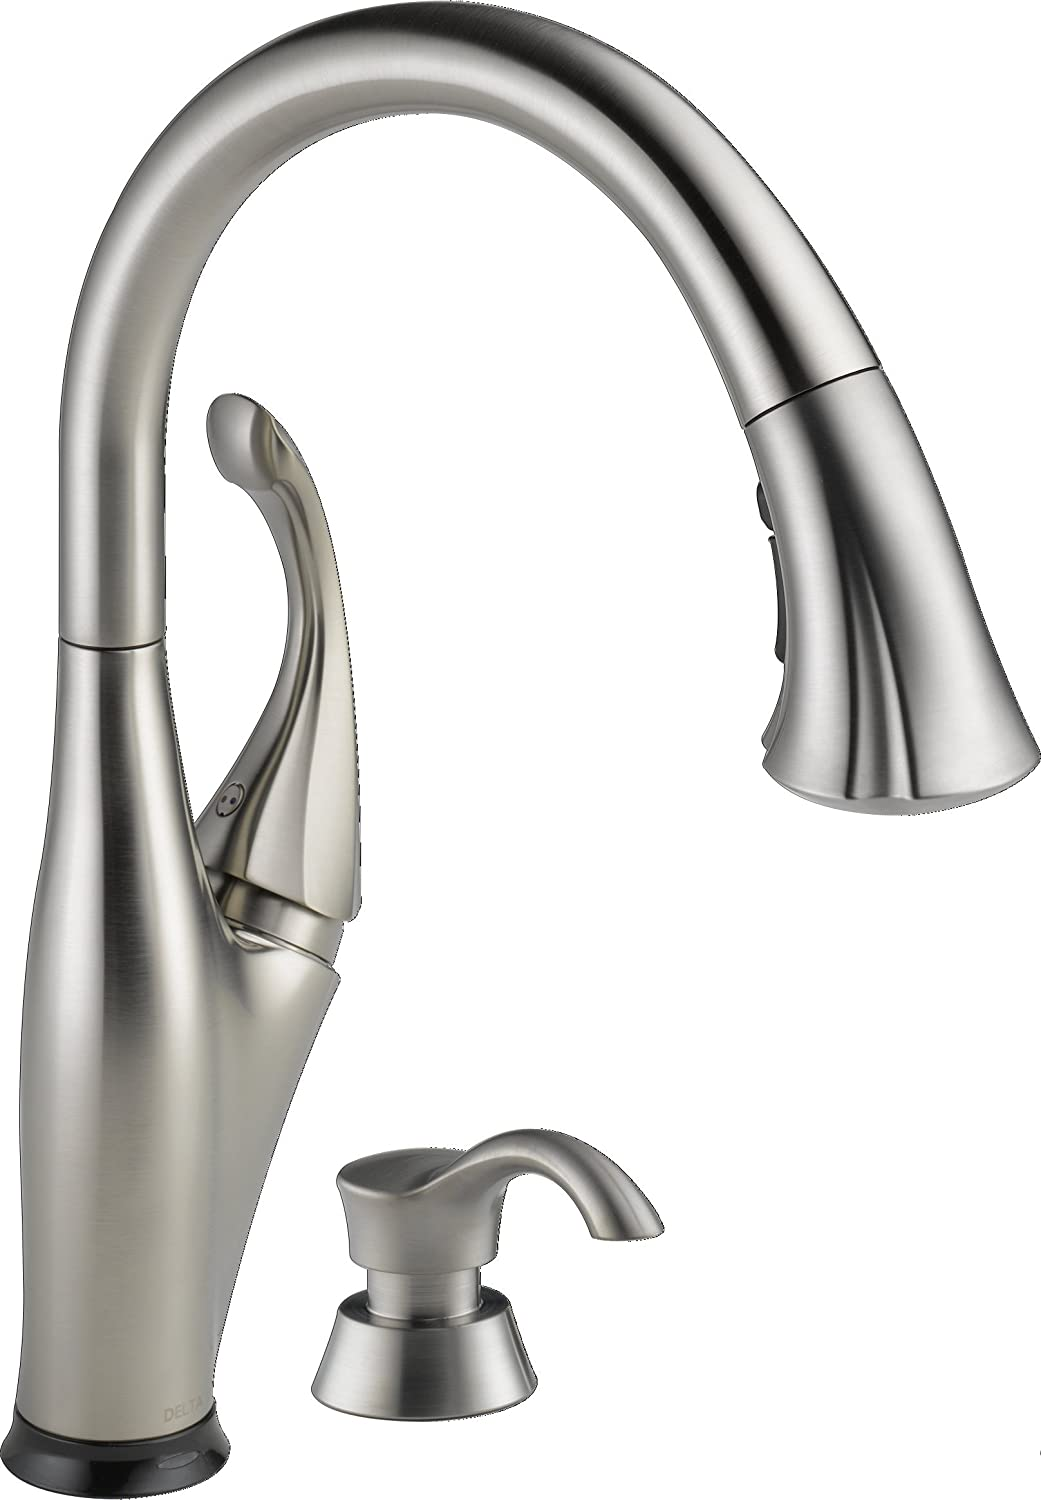 lg kitchen arctic dst faucet handle single delta pullout asp cassidy ar stainless detail spray